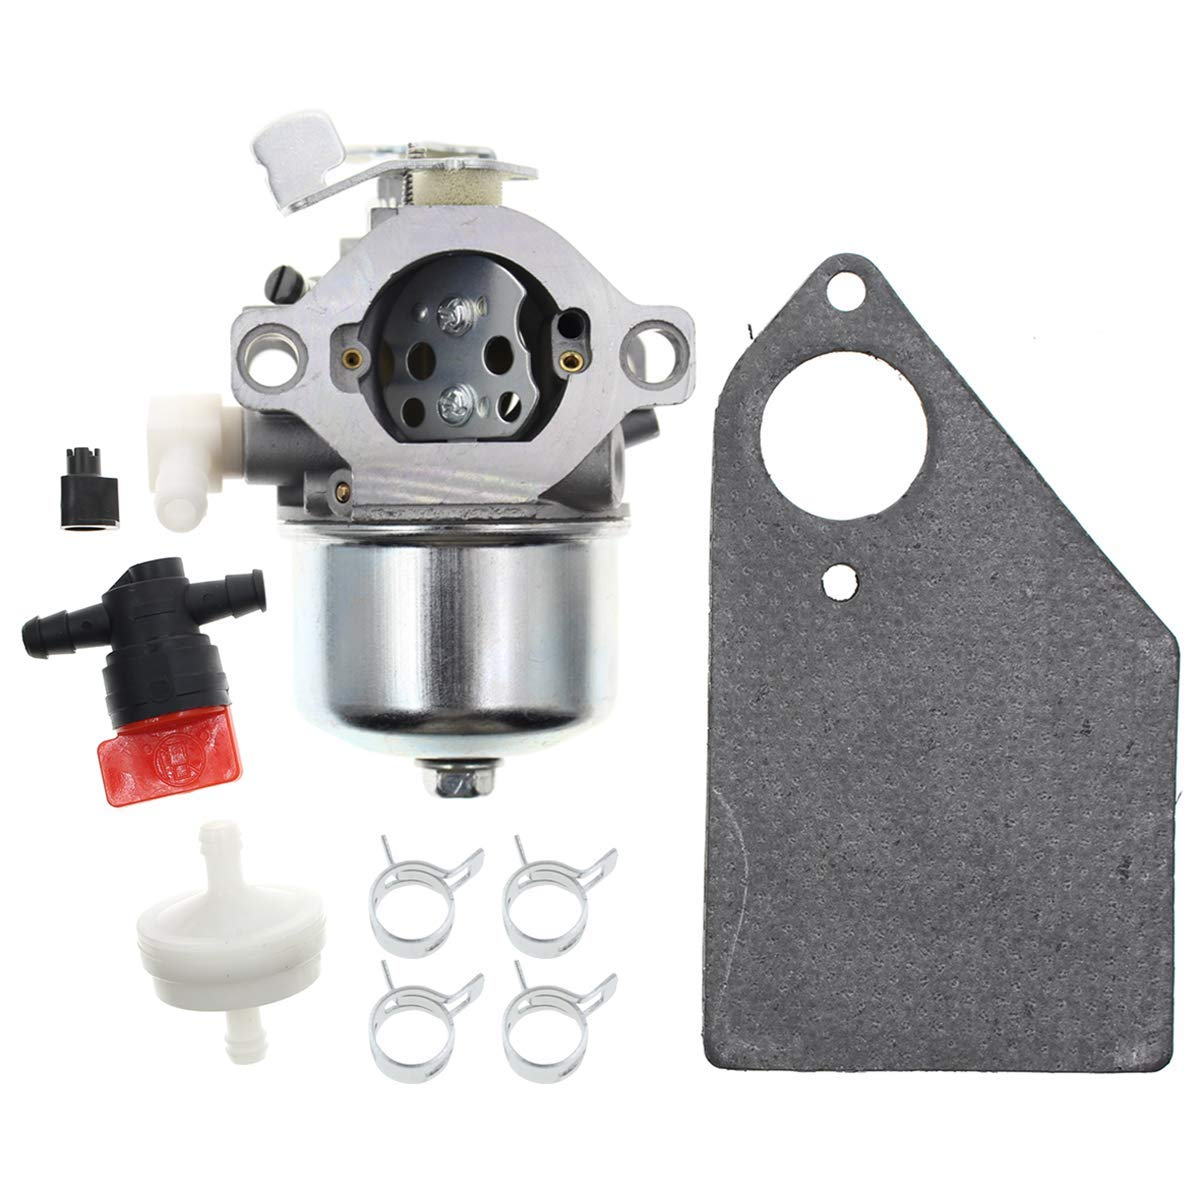 Carbhub 698171 Carburetor for Briggs & Stratton 698171 697594 Replacement Carburetor 698171 Briggs and Stratton Carburetor